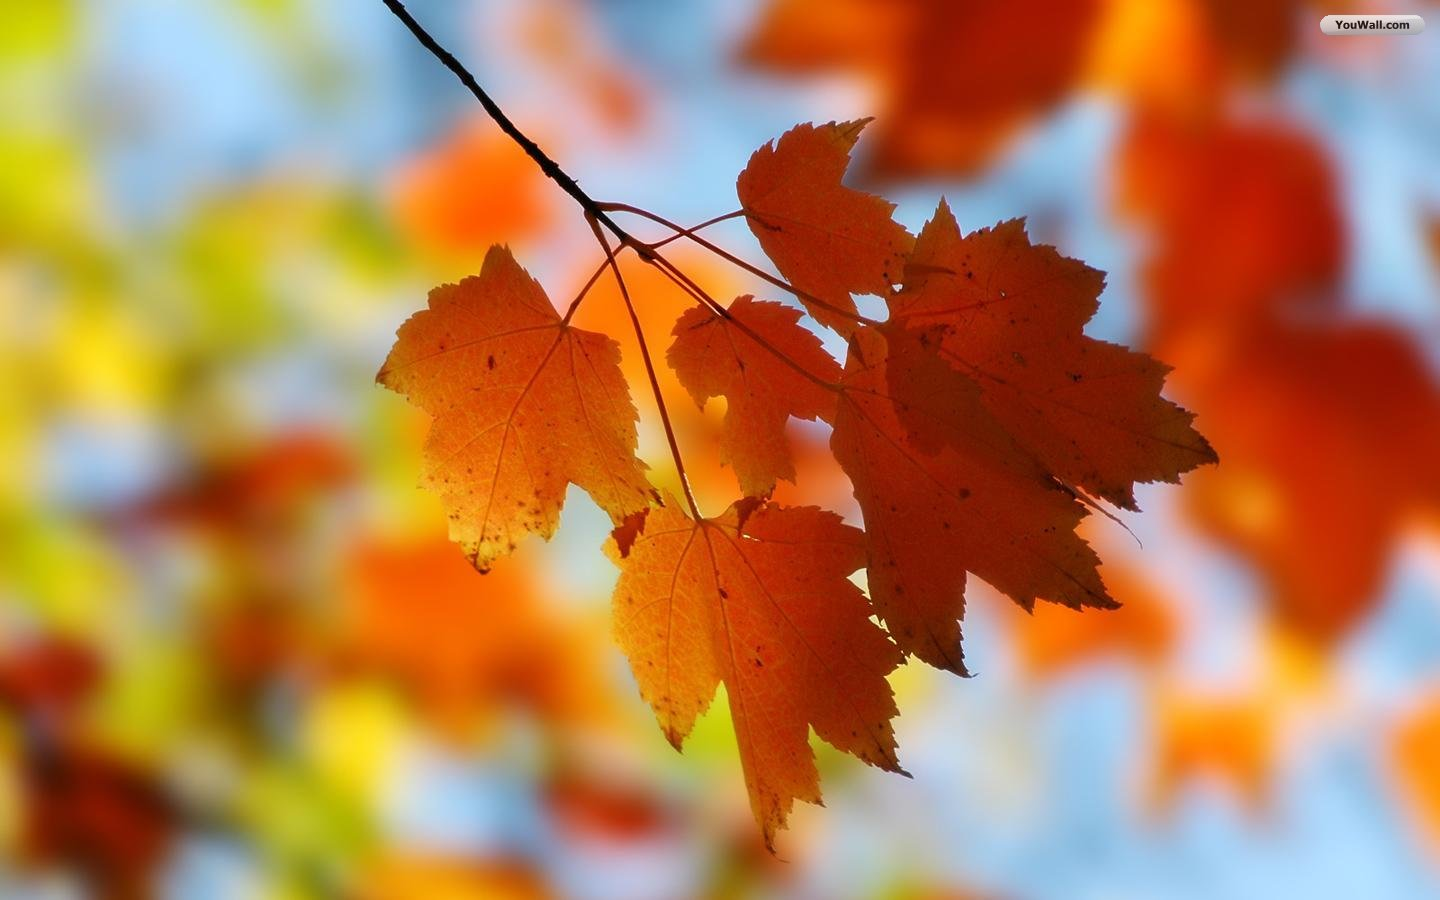 Autumn Leaves Wallpaper   wallpaperwallpapersfree wallpaper 1440x900